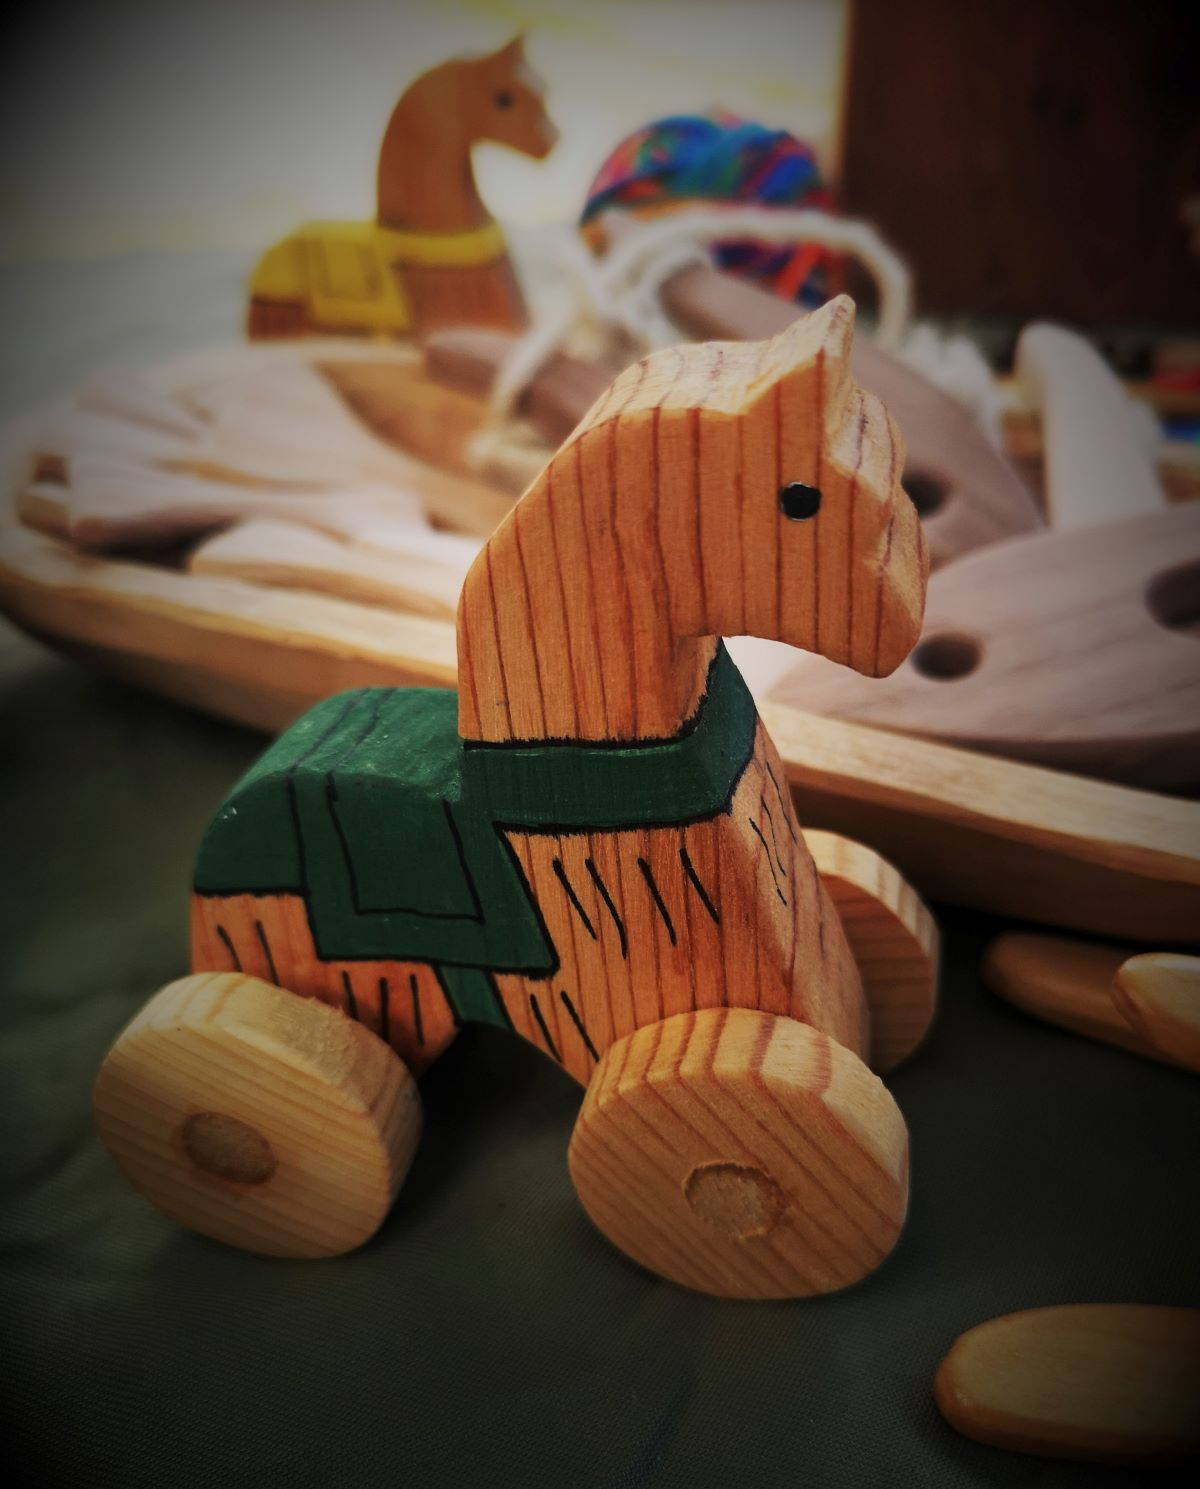 A wooden toy horse Jamie created based on an archeological find from the 13th century.